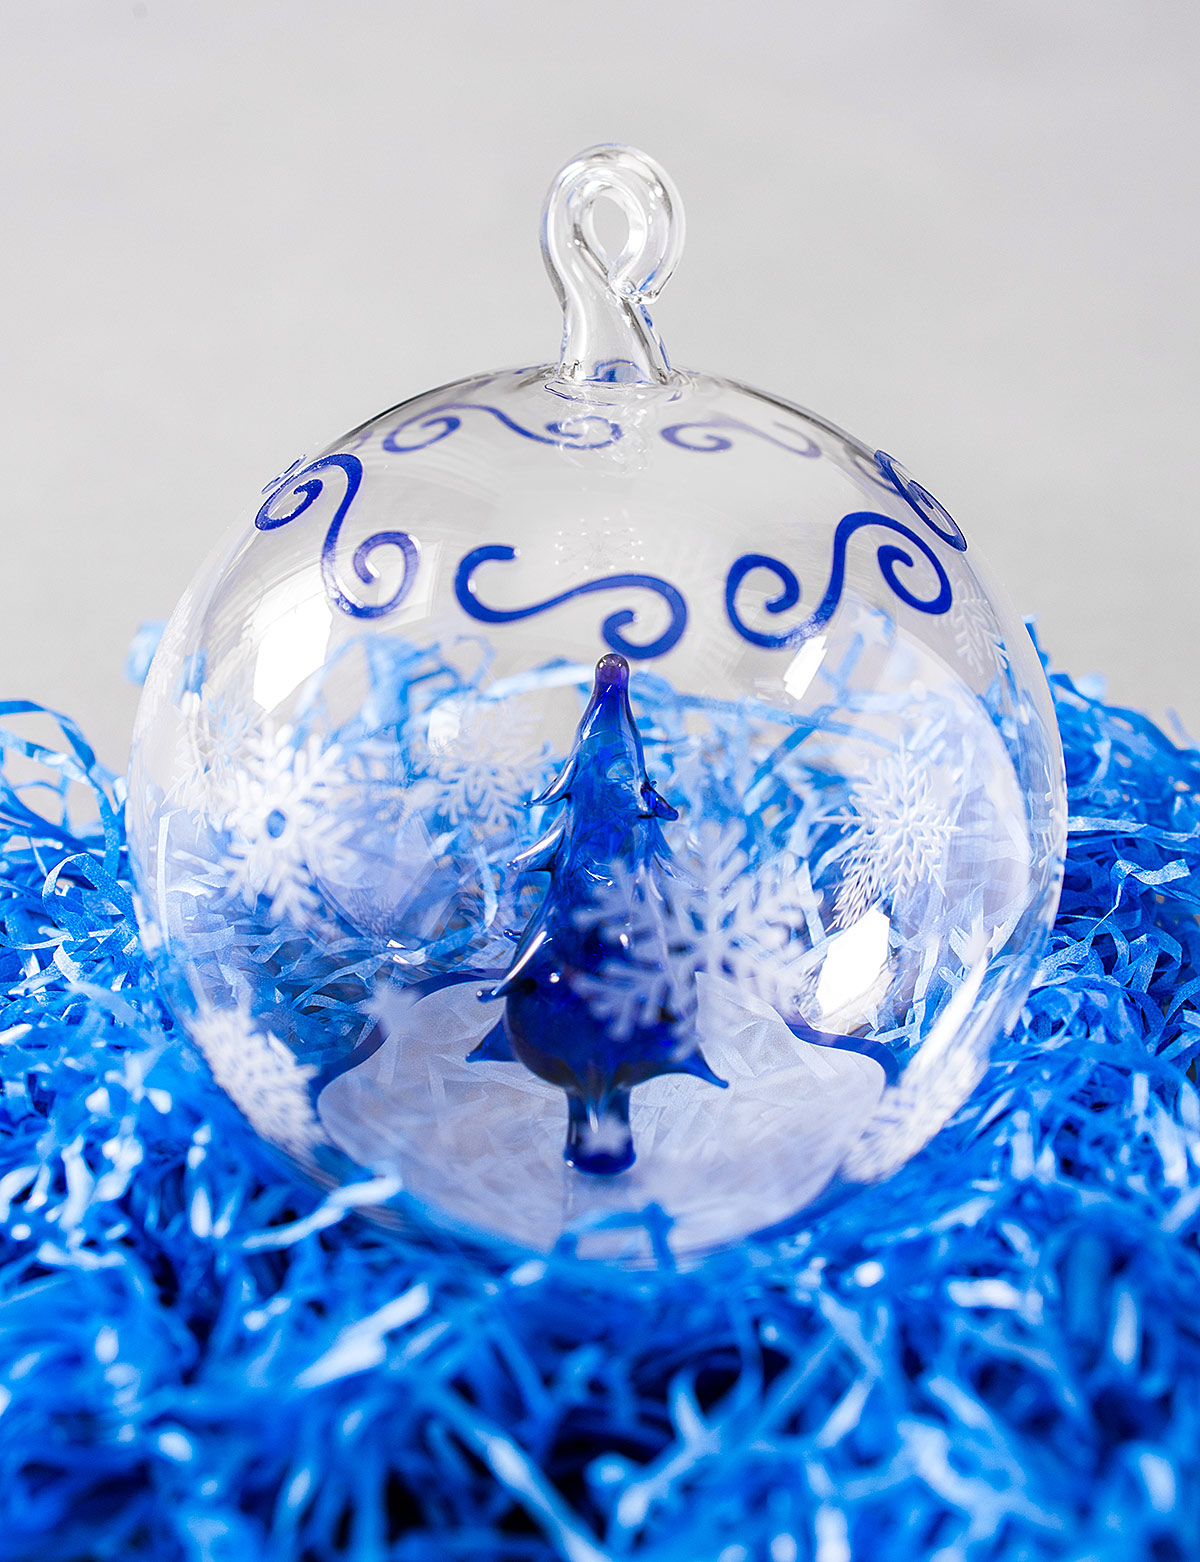 Exclusive handmade Christmas toy. Glass Christmas ball as a New Year's gift to Altbank bank VIP customers.